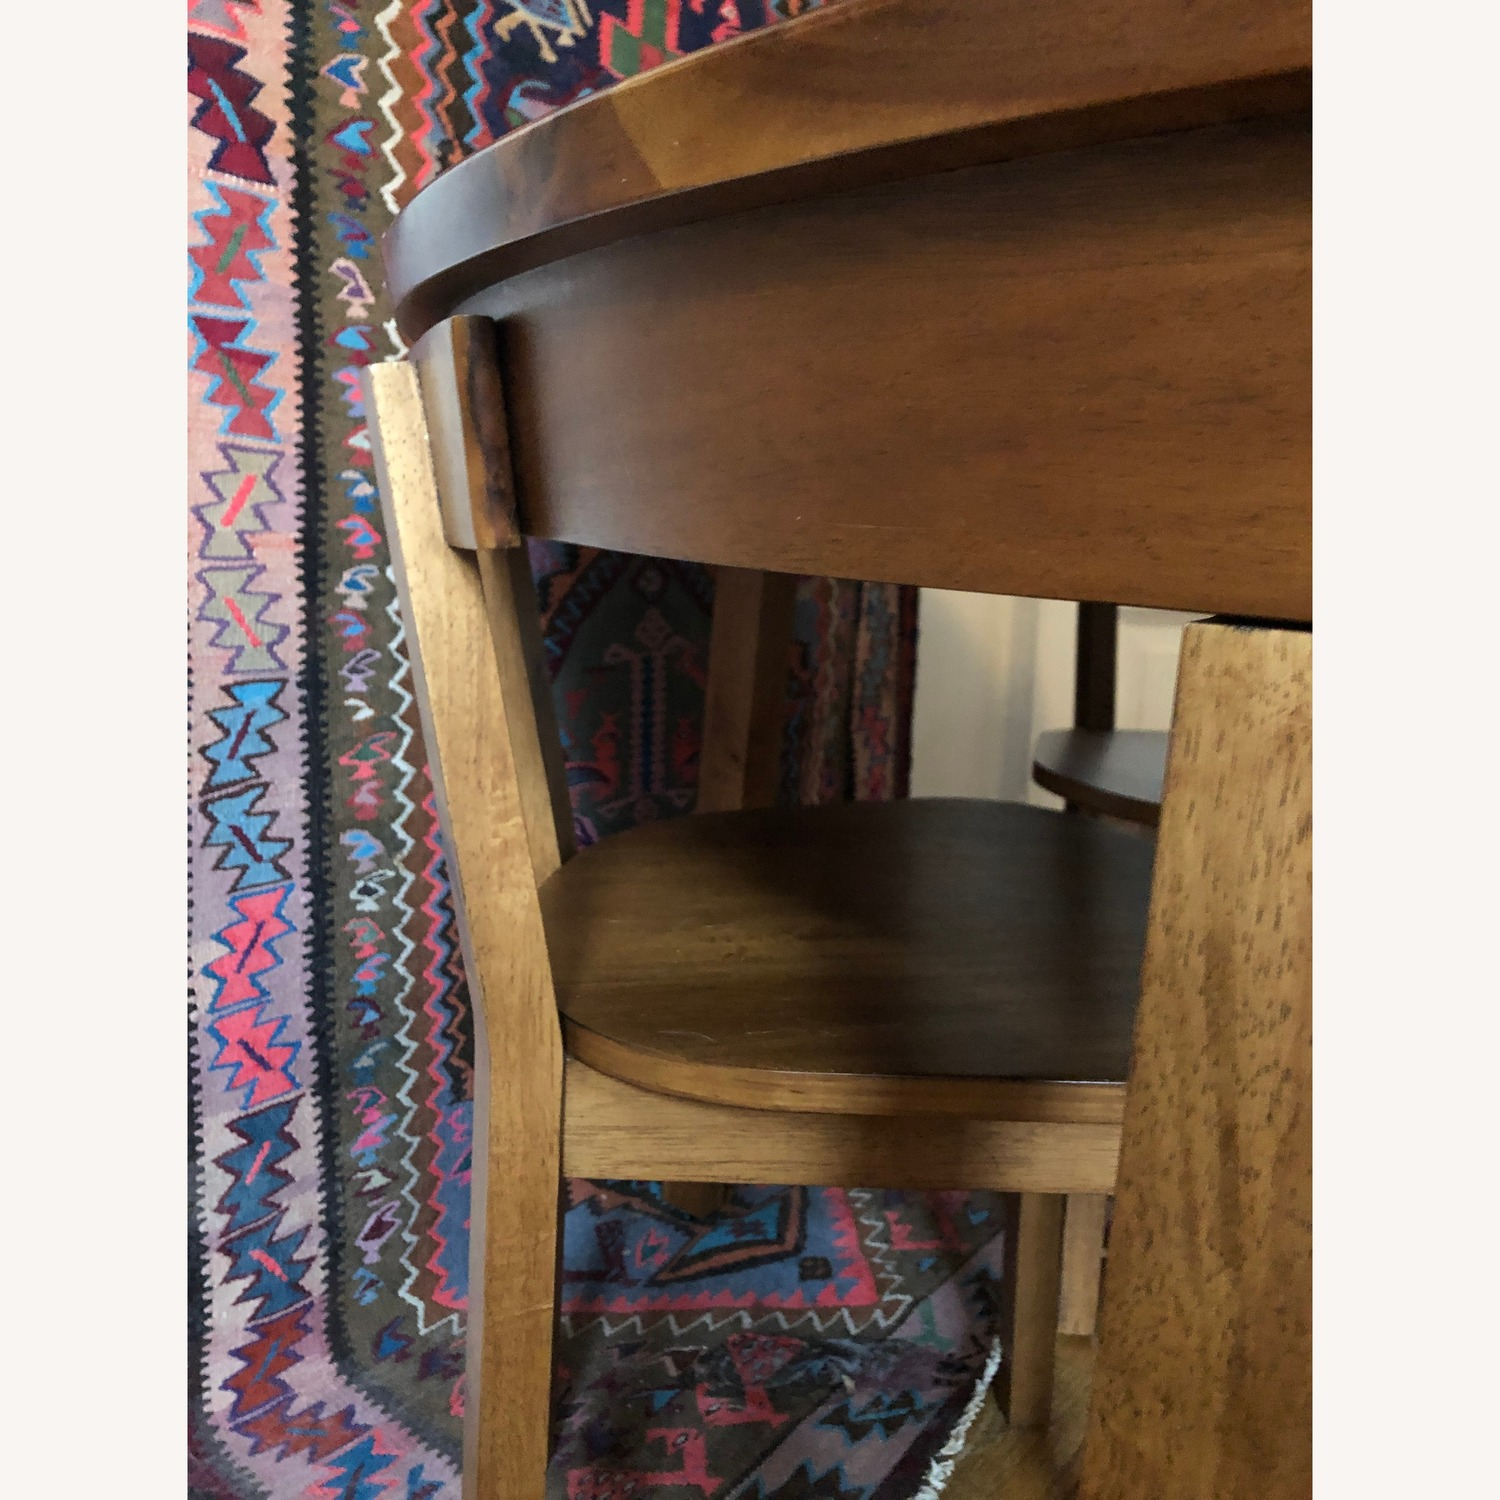 CB2 Round Dining Table w/ 4 Inlaid Chairs - image-6